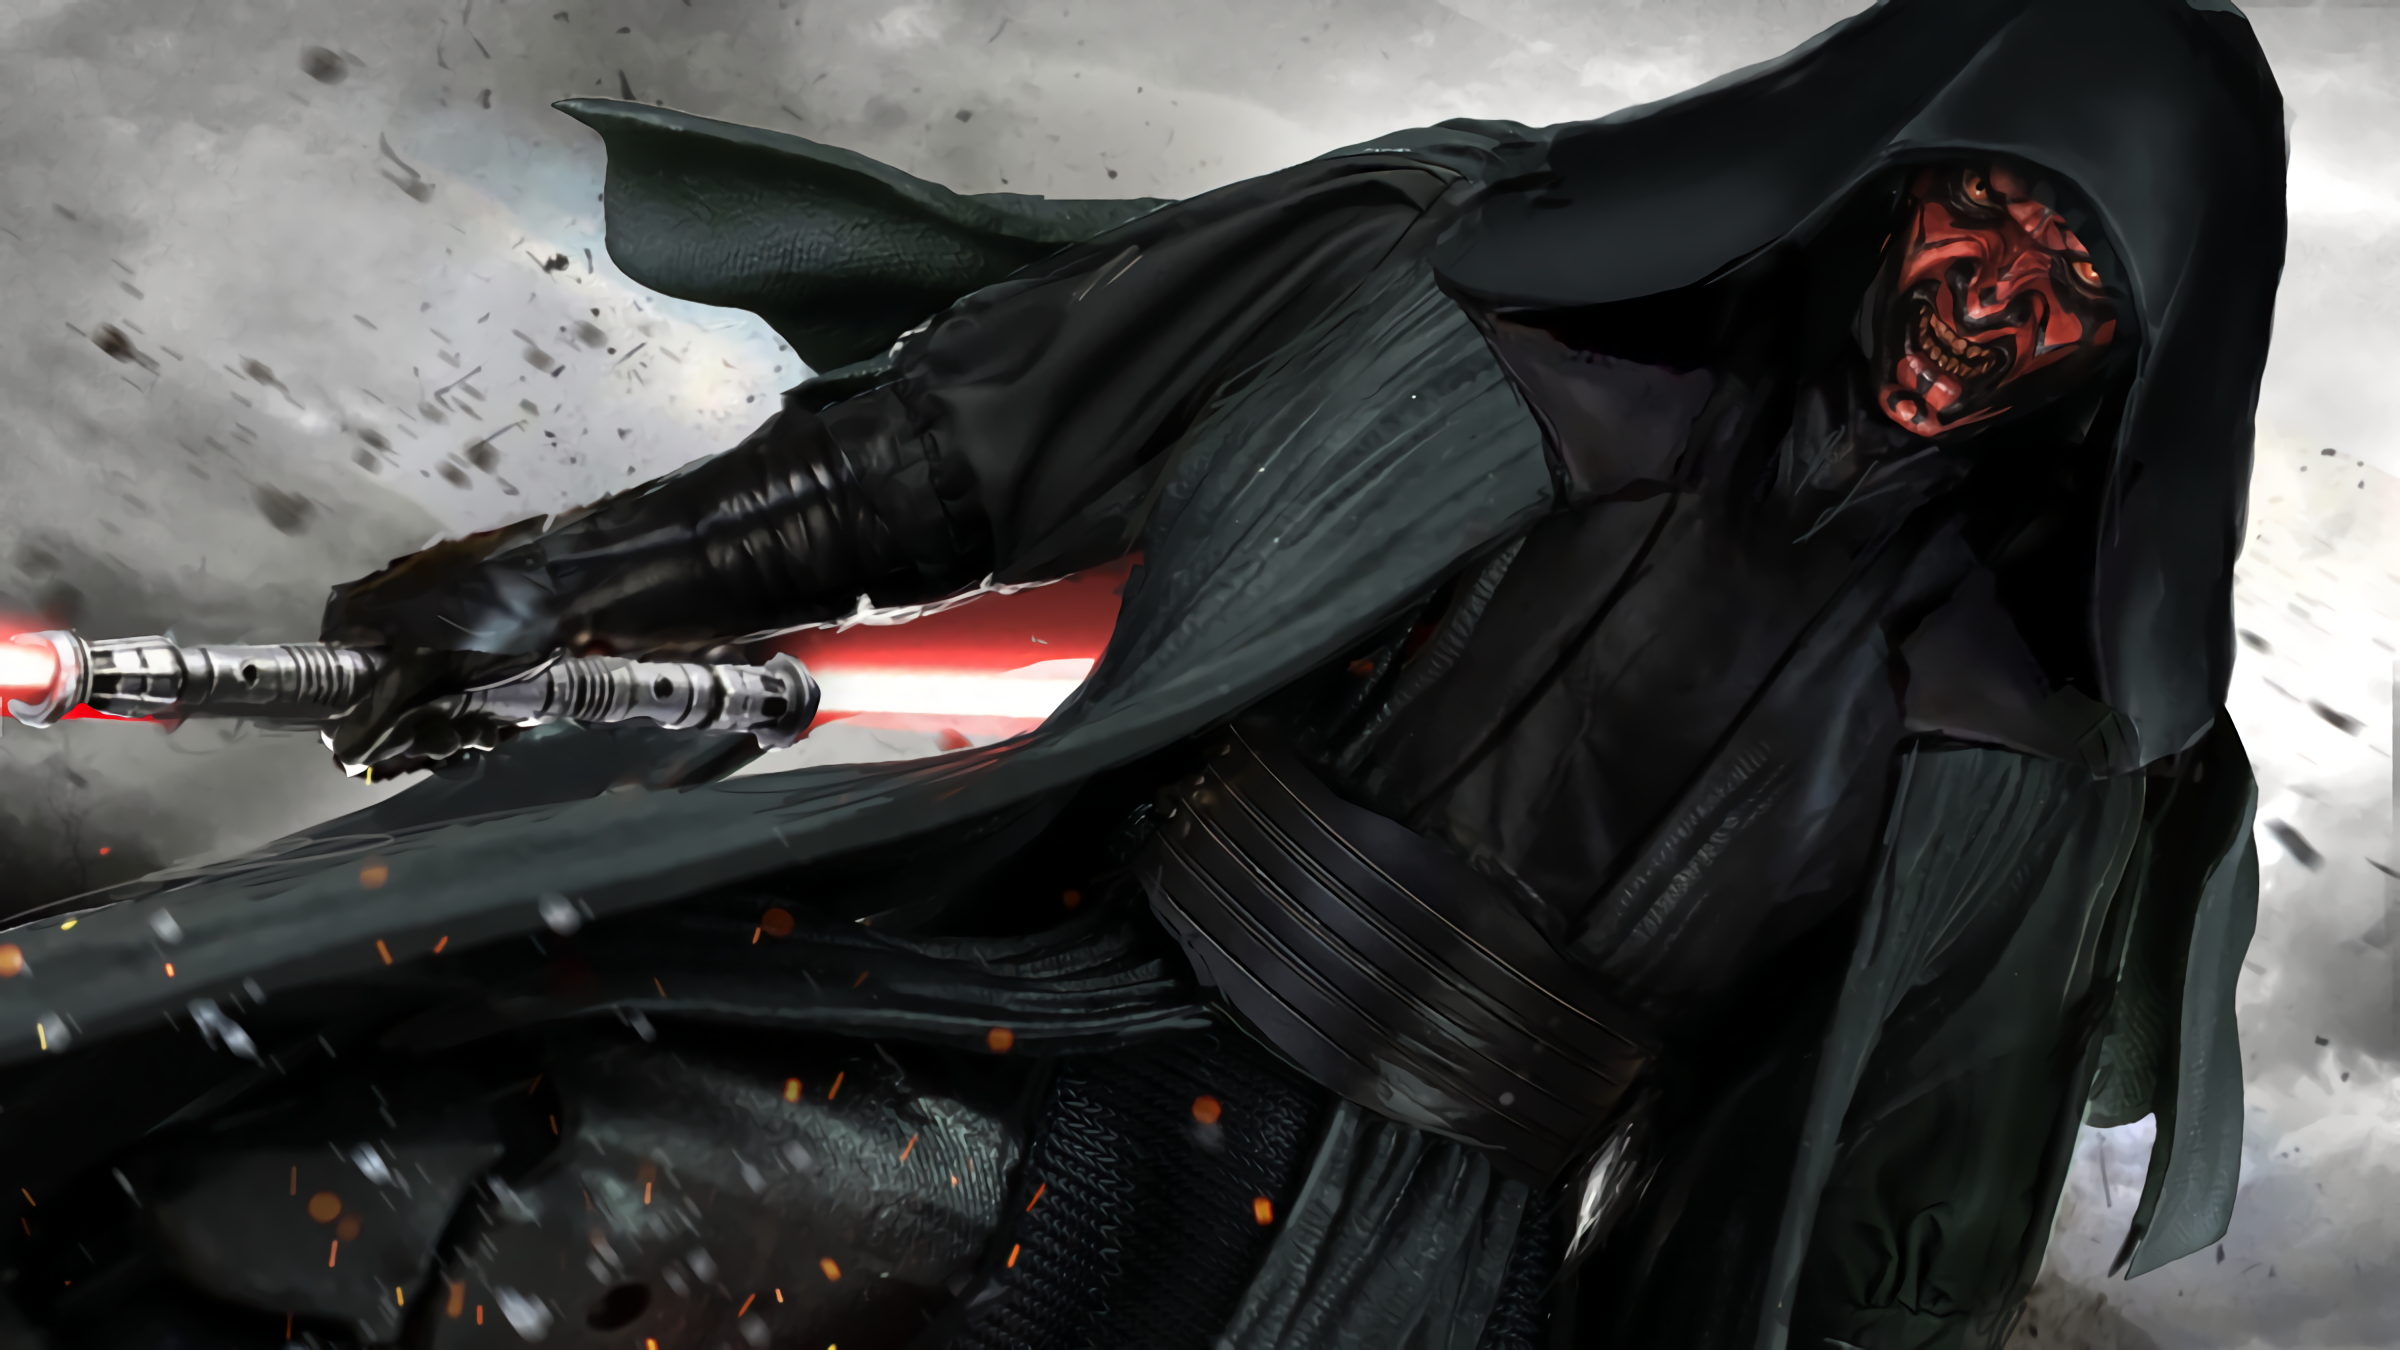 78 Darth Maul Hd Wallpapers Background Images Wallpaper Abyss